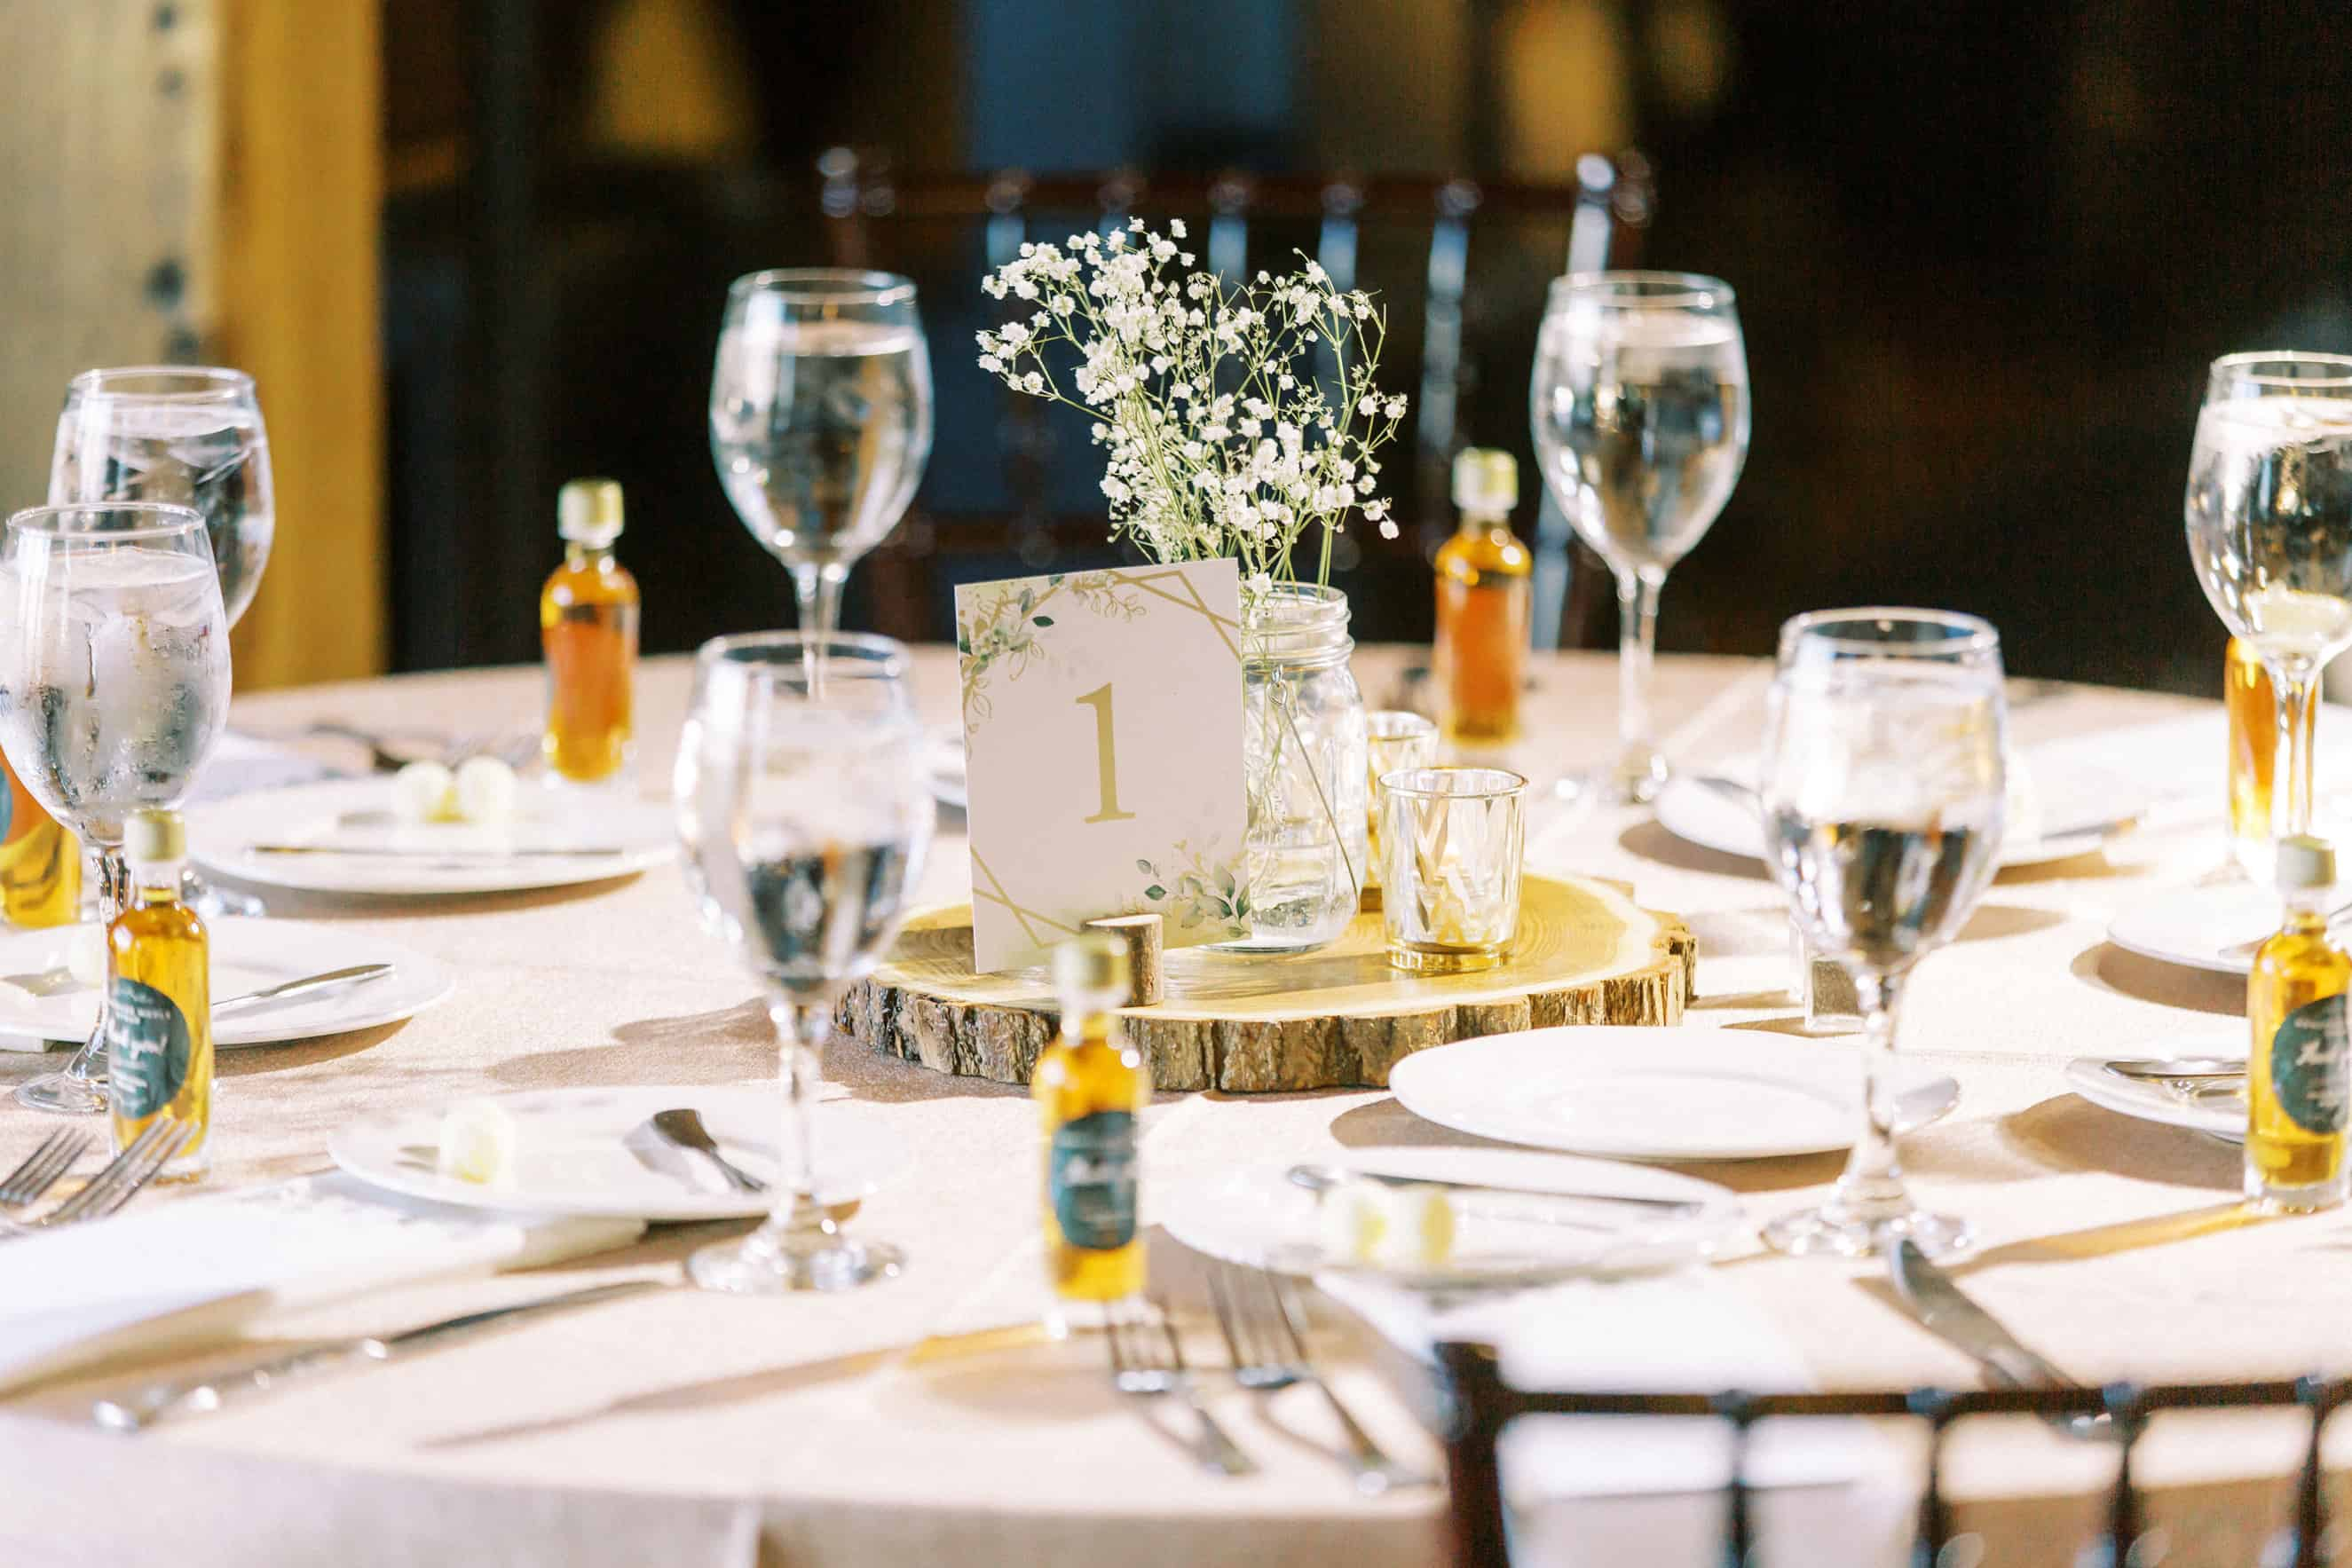 Wedding Receptions at Harvest View Barn at Hershey Farms